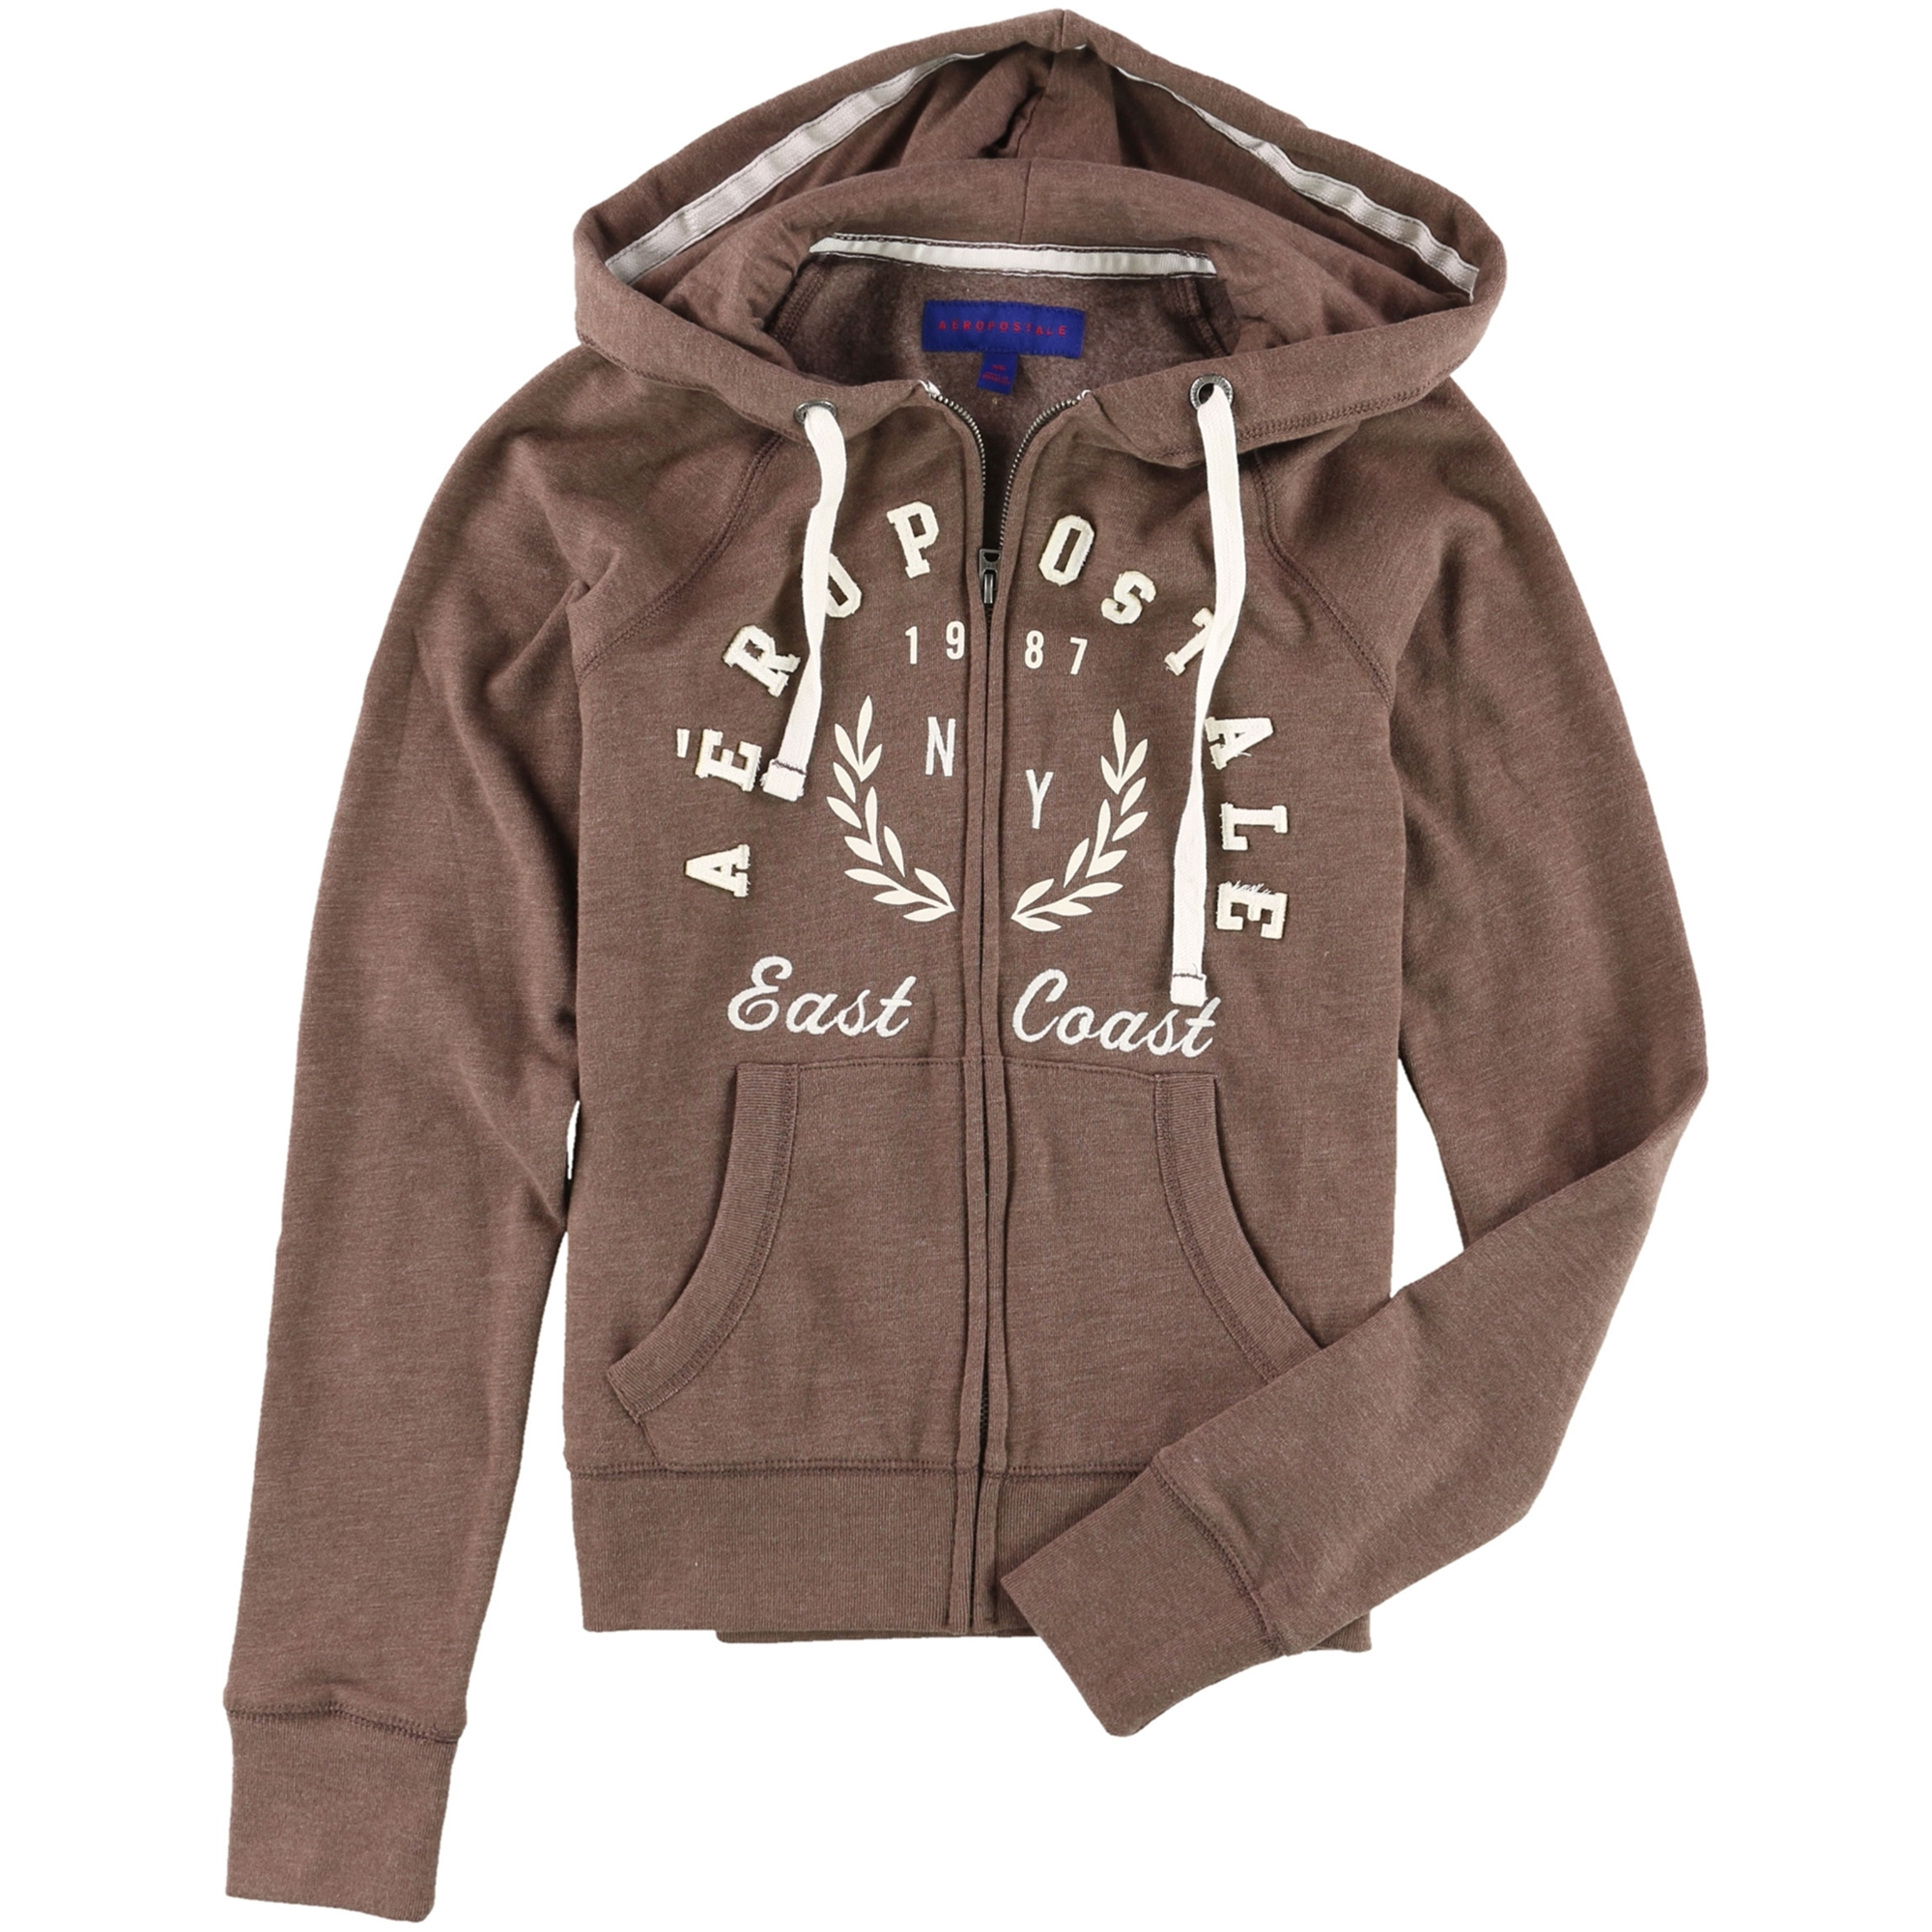 p.s.09 from aeropostale Aeropostale Womens Full Zip Hoodie Sweatshirt, Brown, X Small